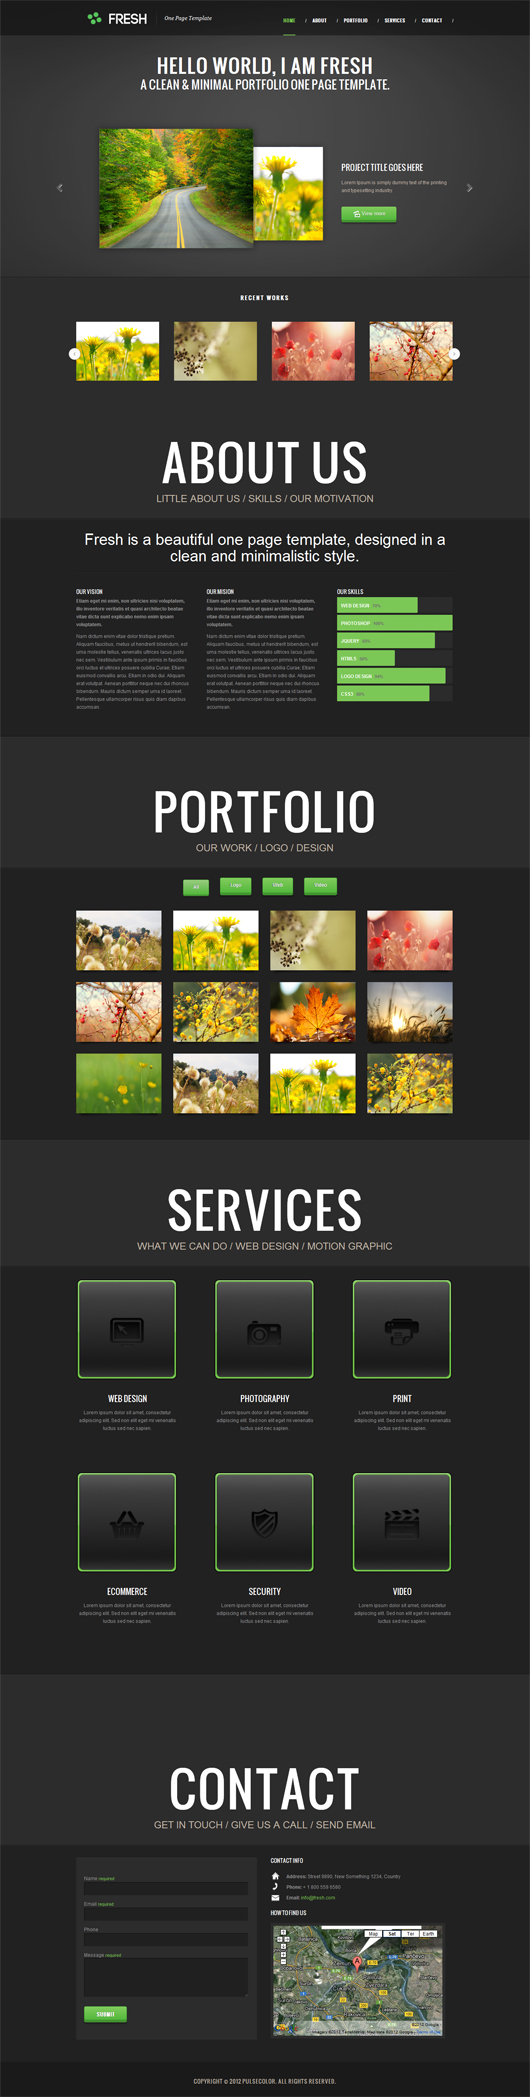 HTML5 CSS3 Premium Portfolio Templates free download